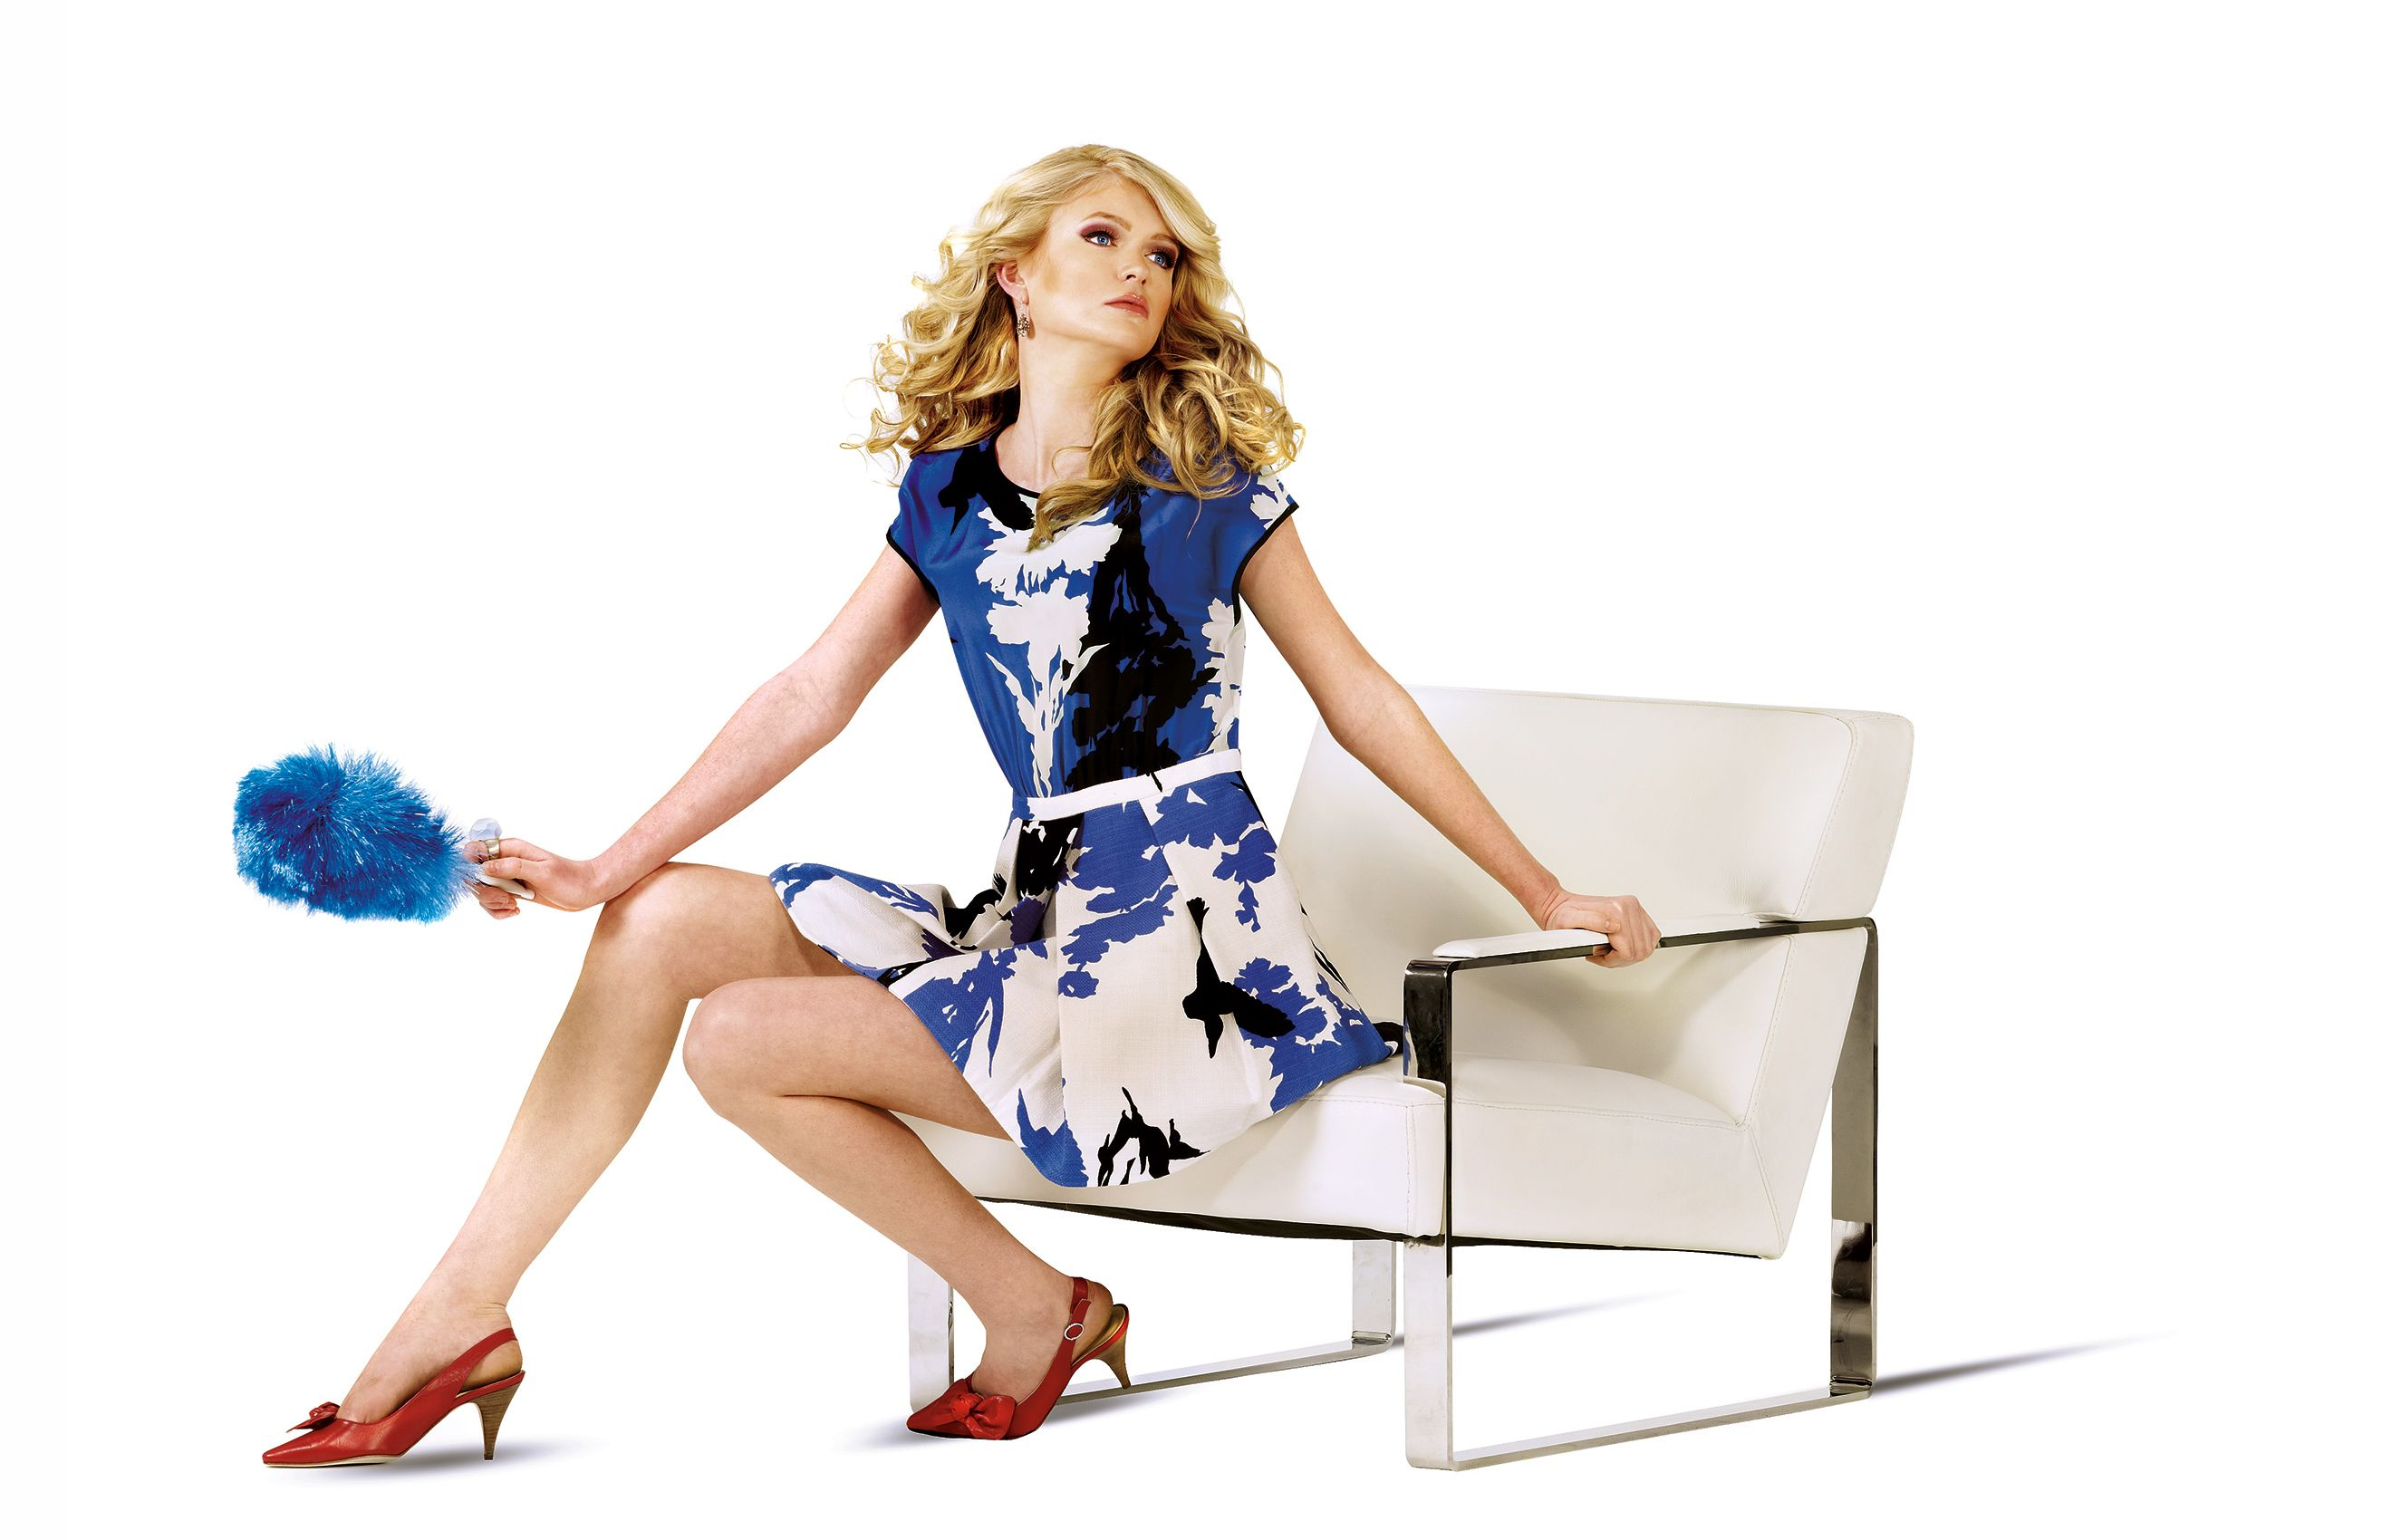 Blue_White-Dress-on-White-Chair.jpg